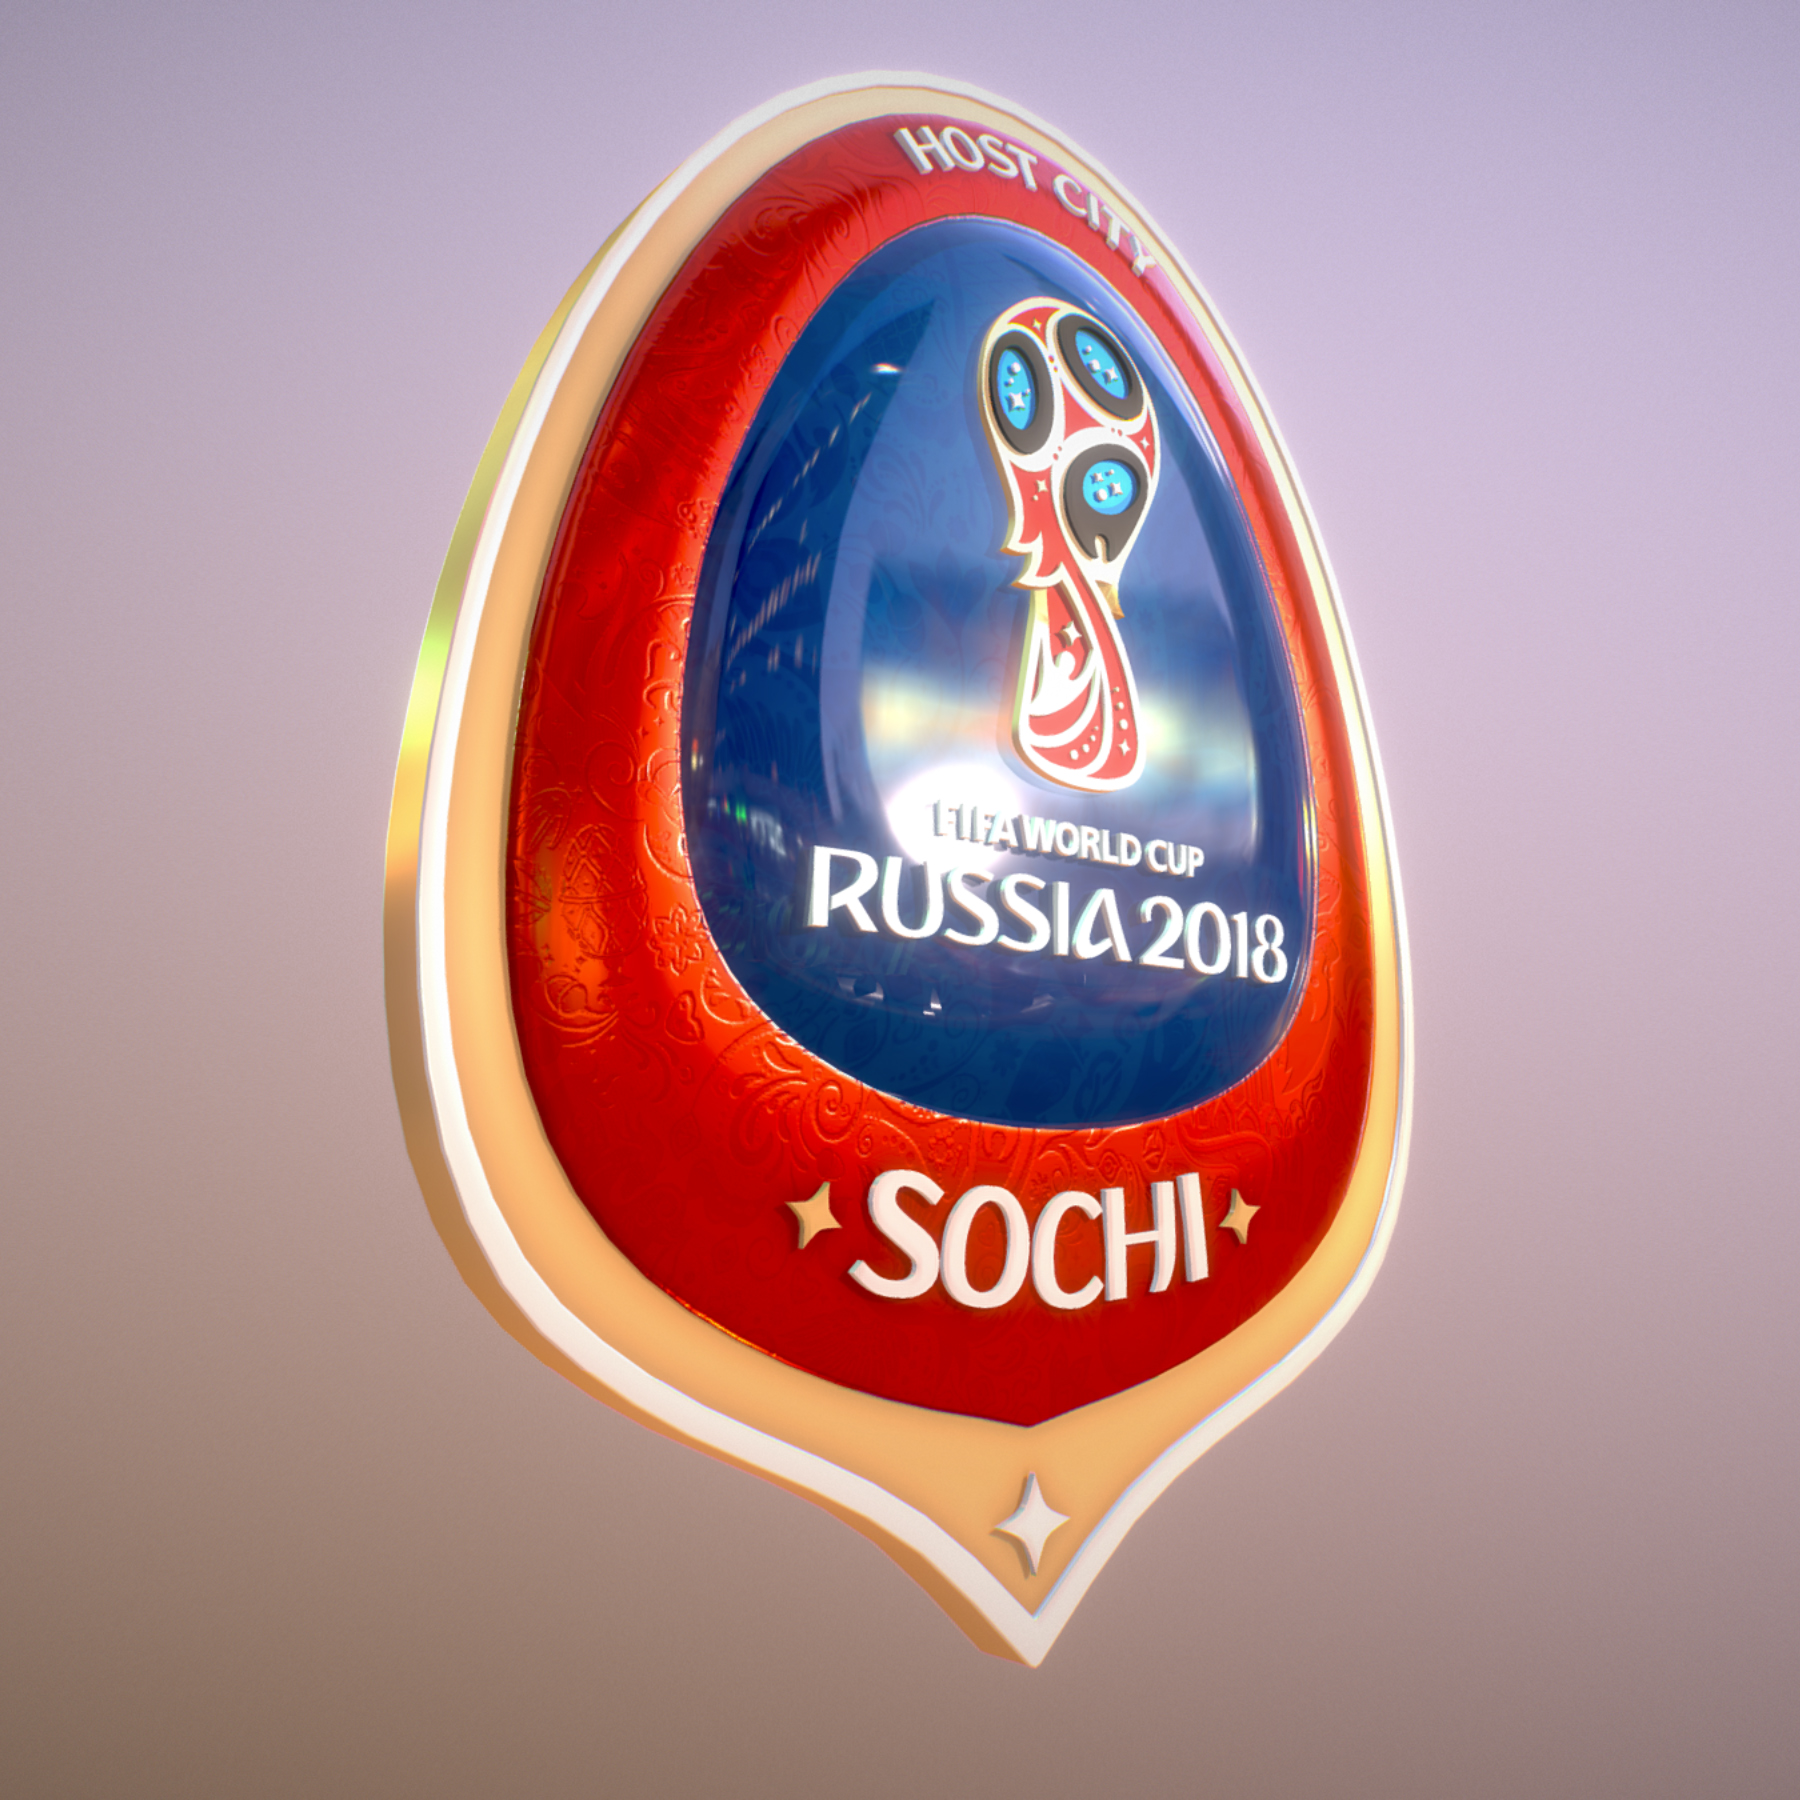 sochi host city world cup russia 2018 symbol 3d model max  fbx ma mb obj 271709